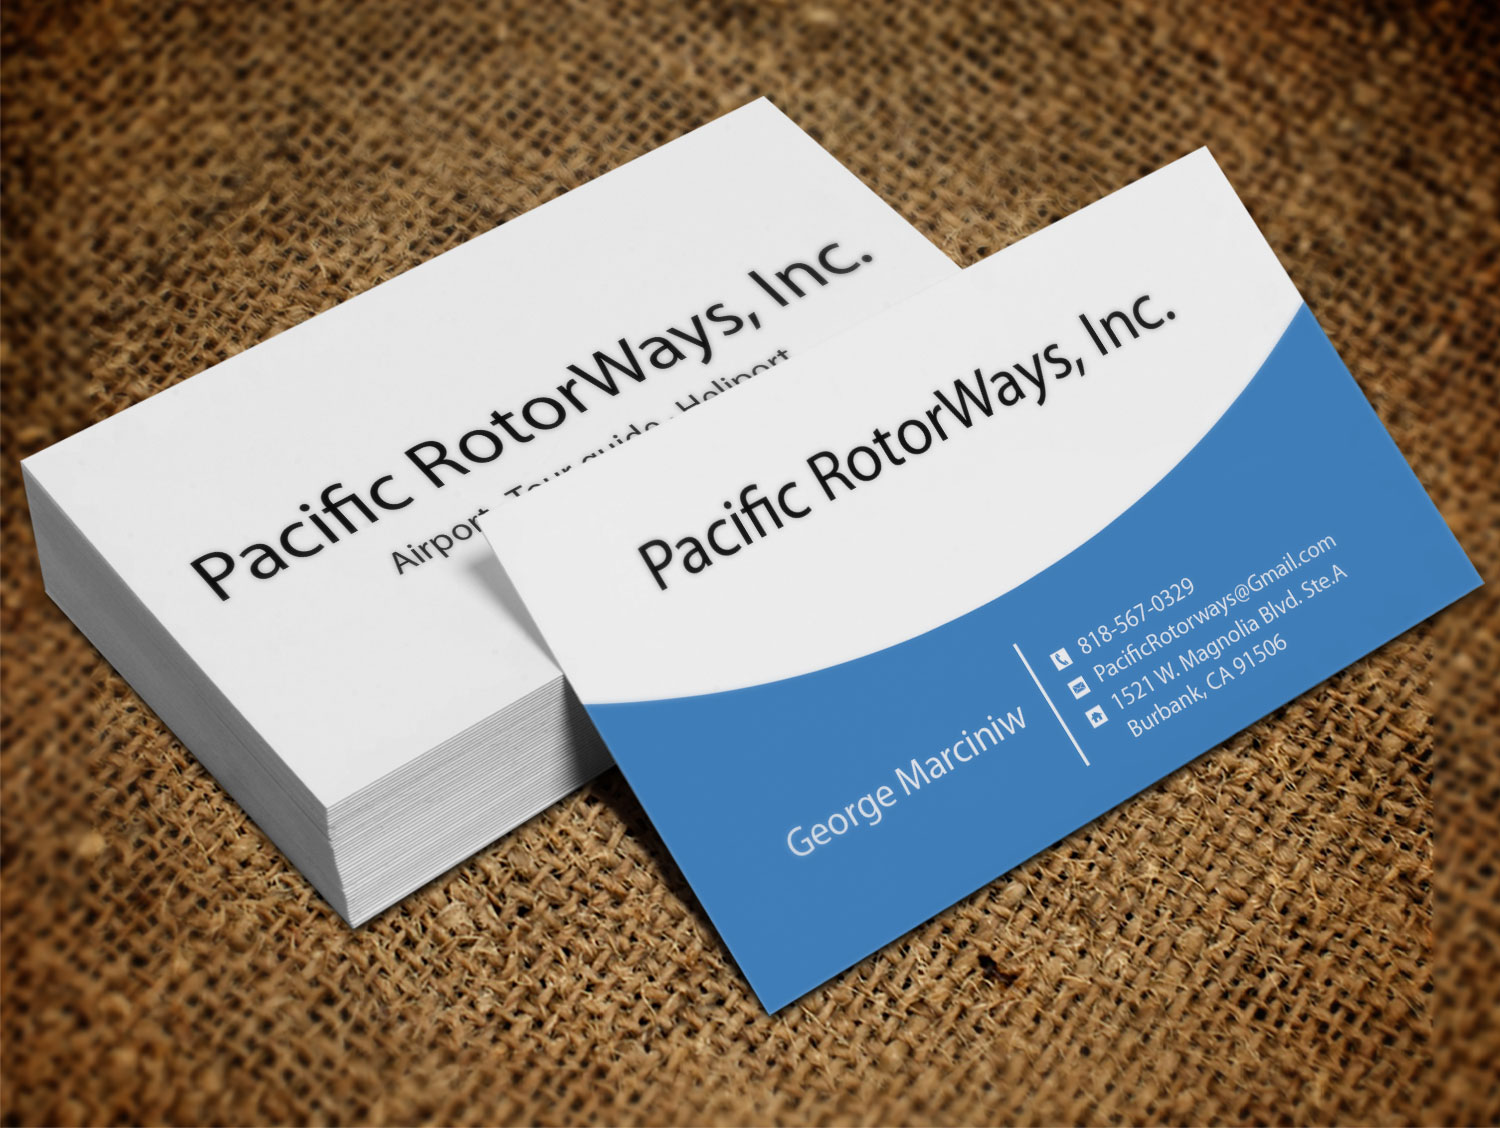 Business business card design for pacific rotorways inc by business business card design for pacific rotorways inc in united states design 8530086 colourmoves